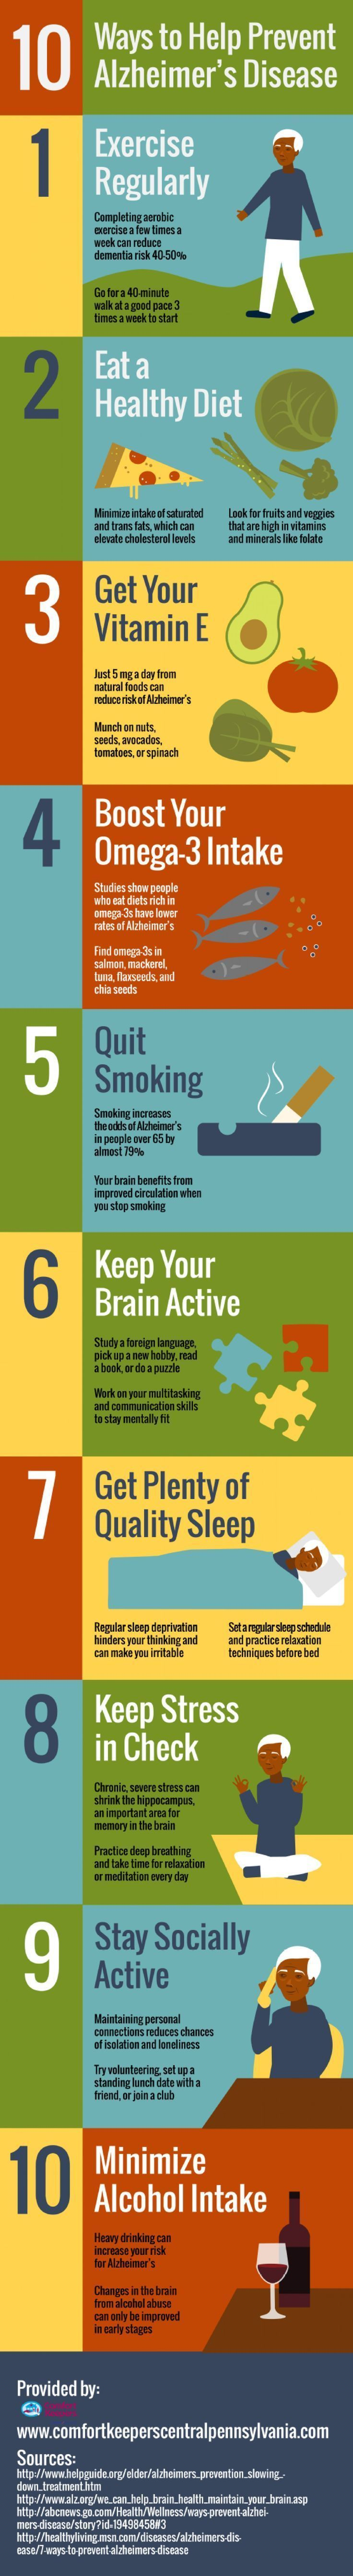 10 Ways to Help Prevent Alzheimer's Disease -shared by BrittSE on Mar 29, 201 ...